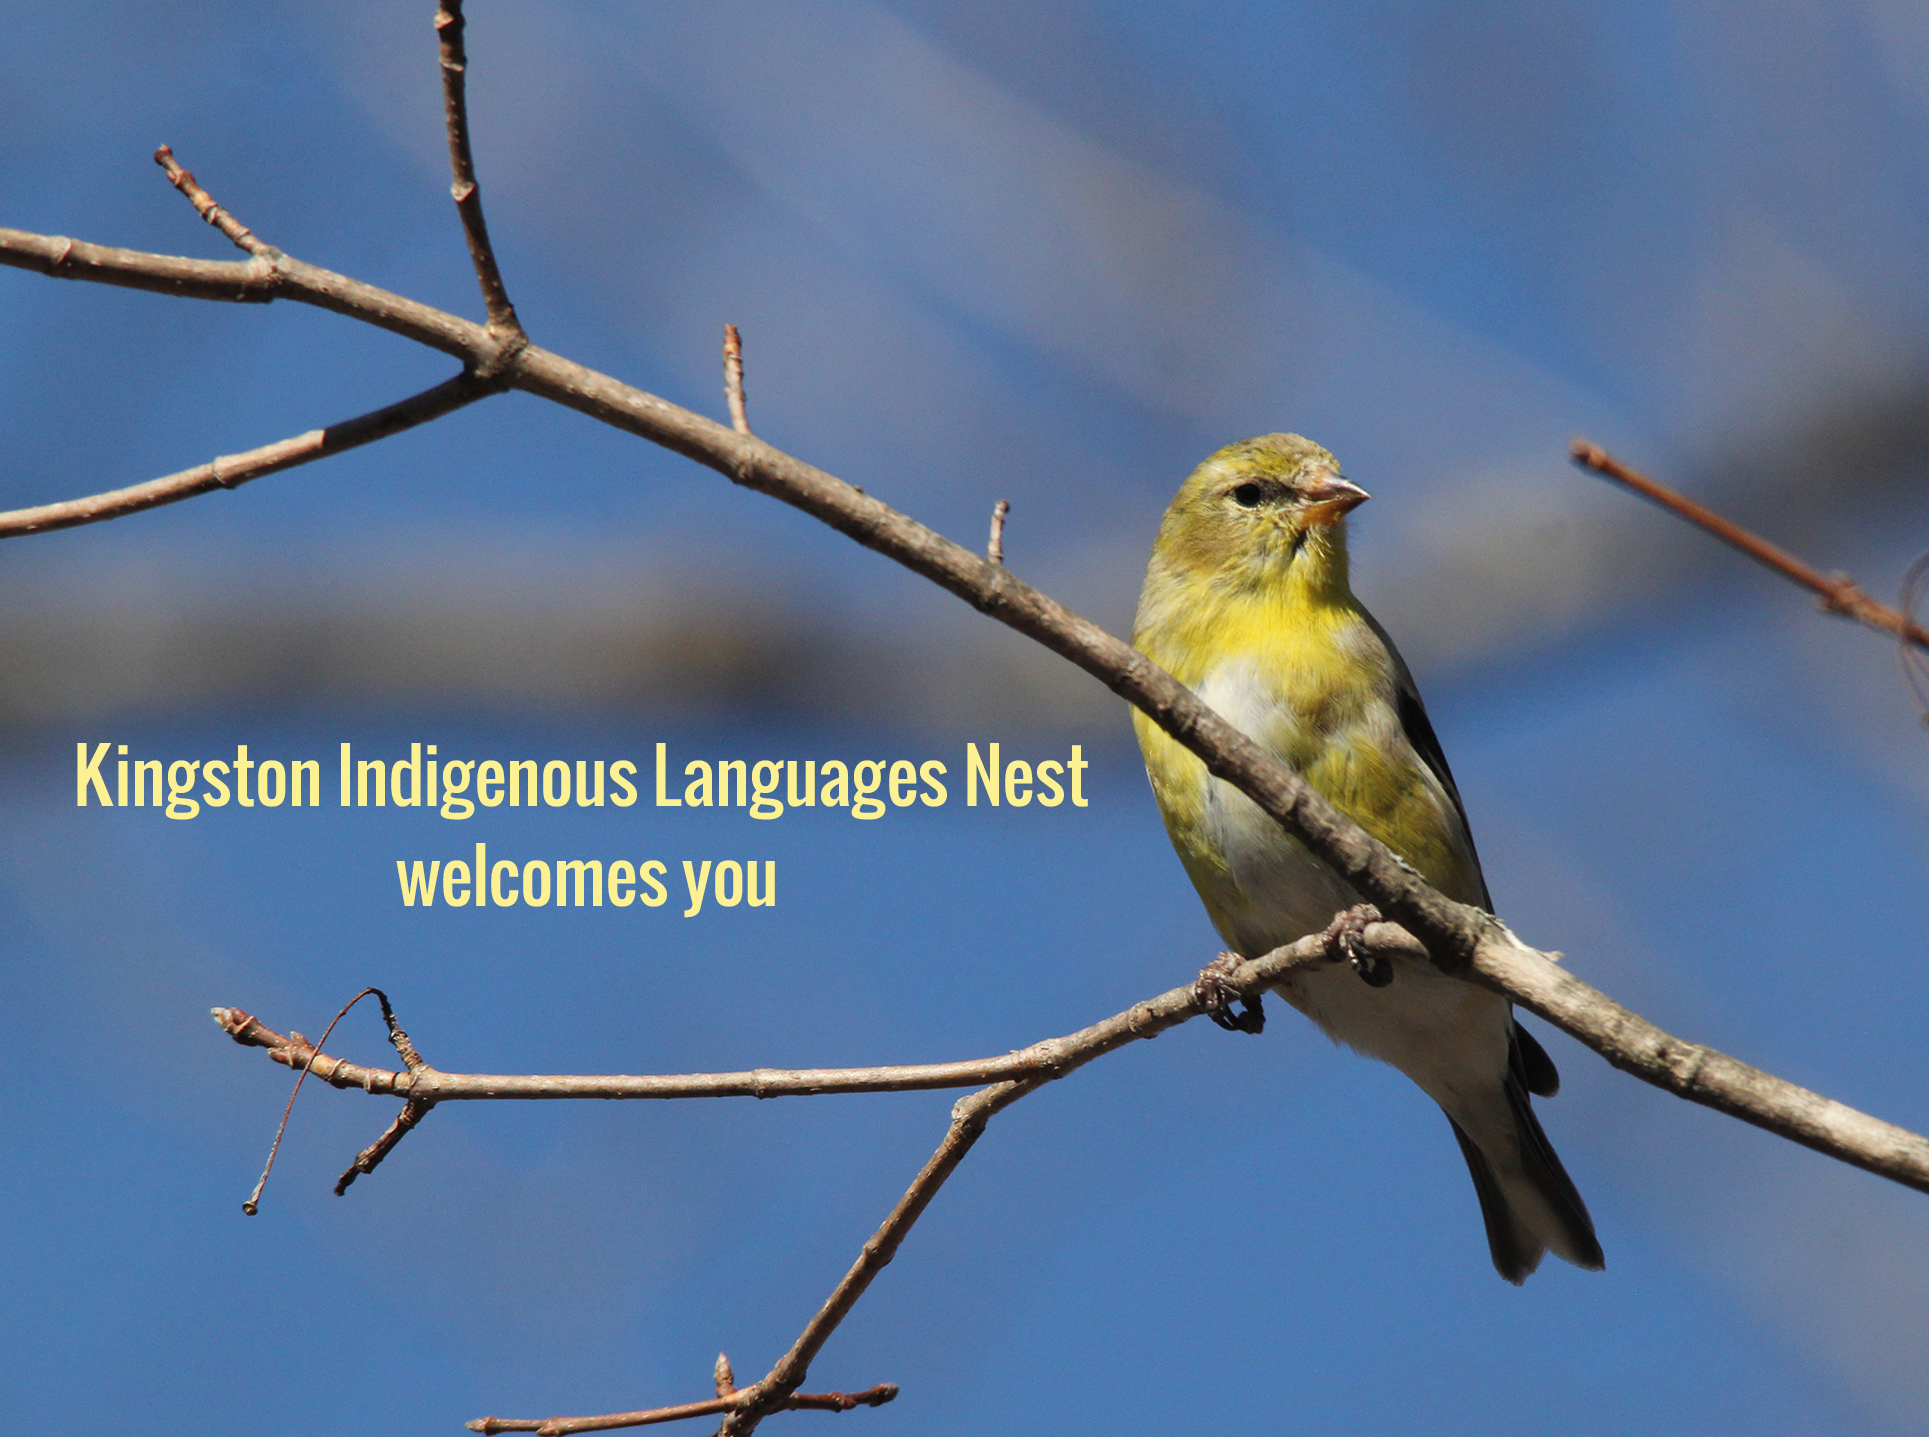 Kingston Indigenous Languages Nest welcomes you